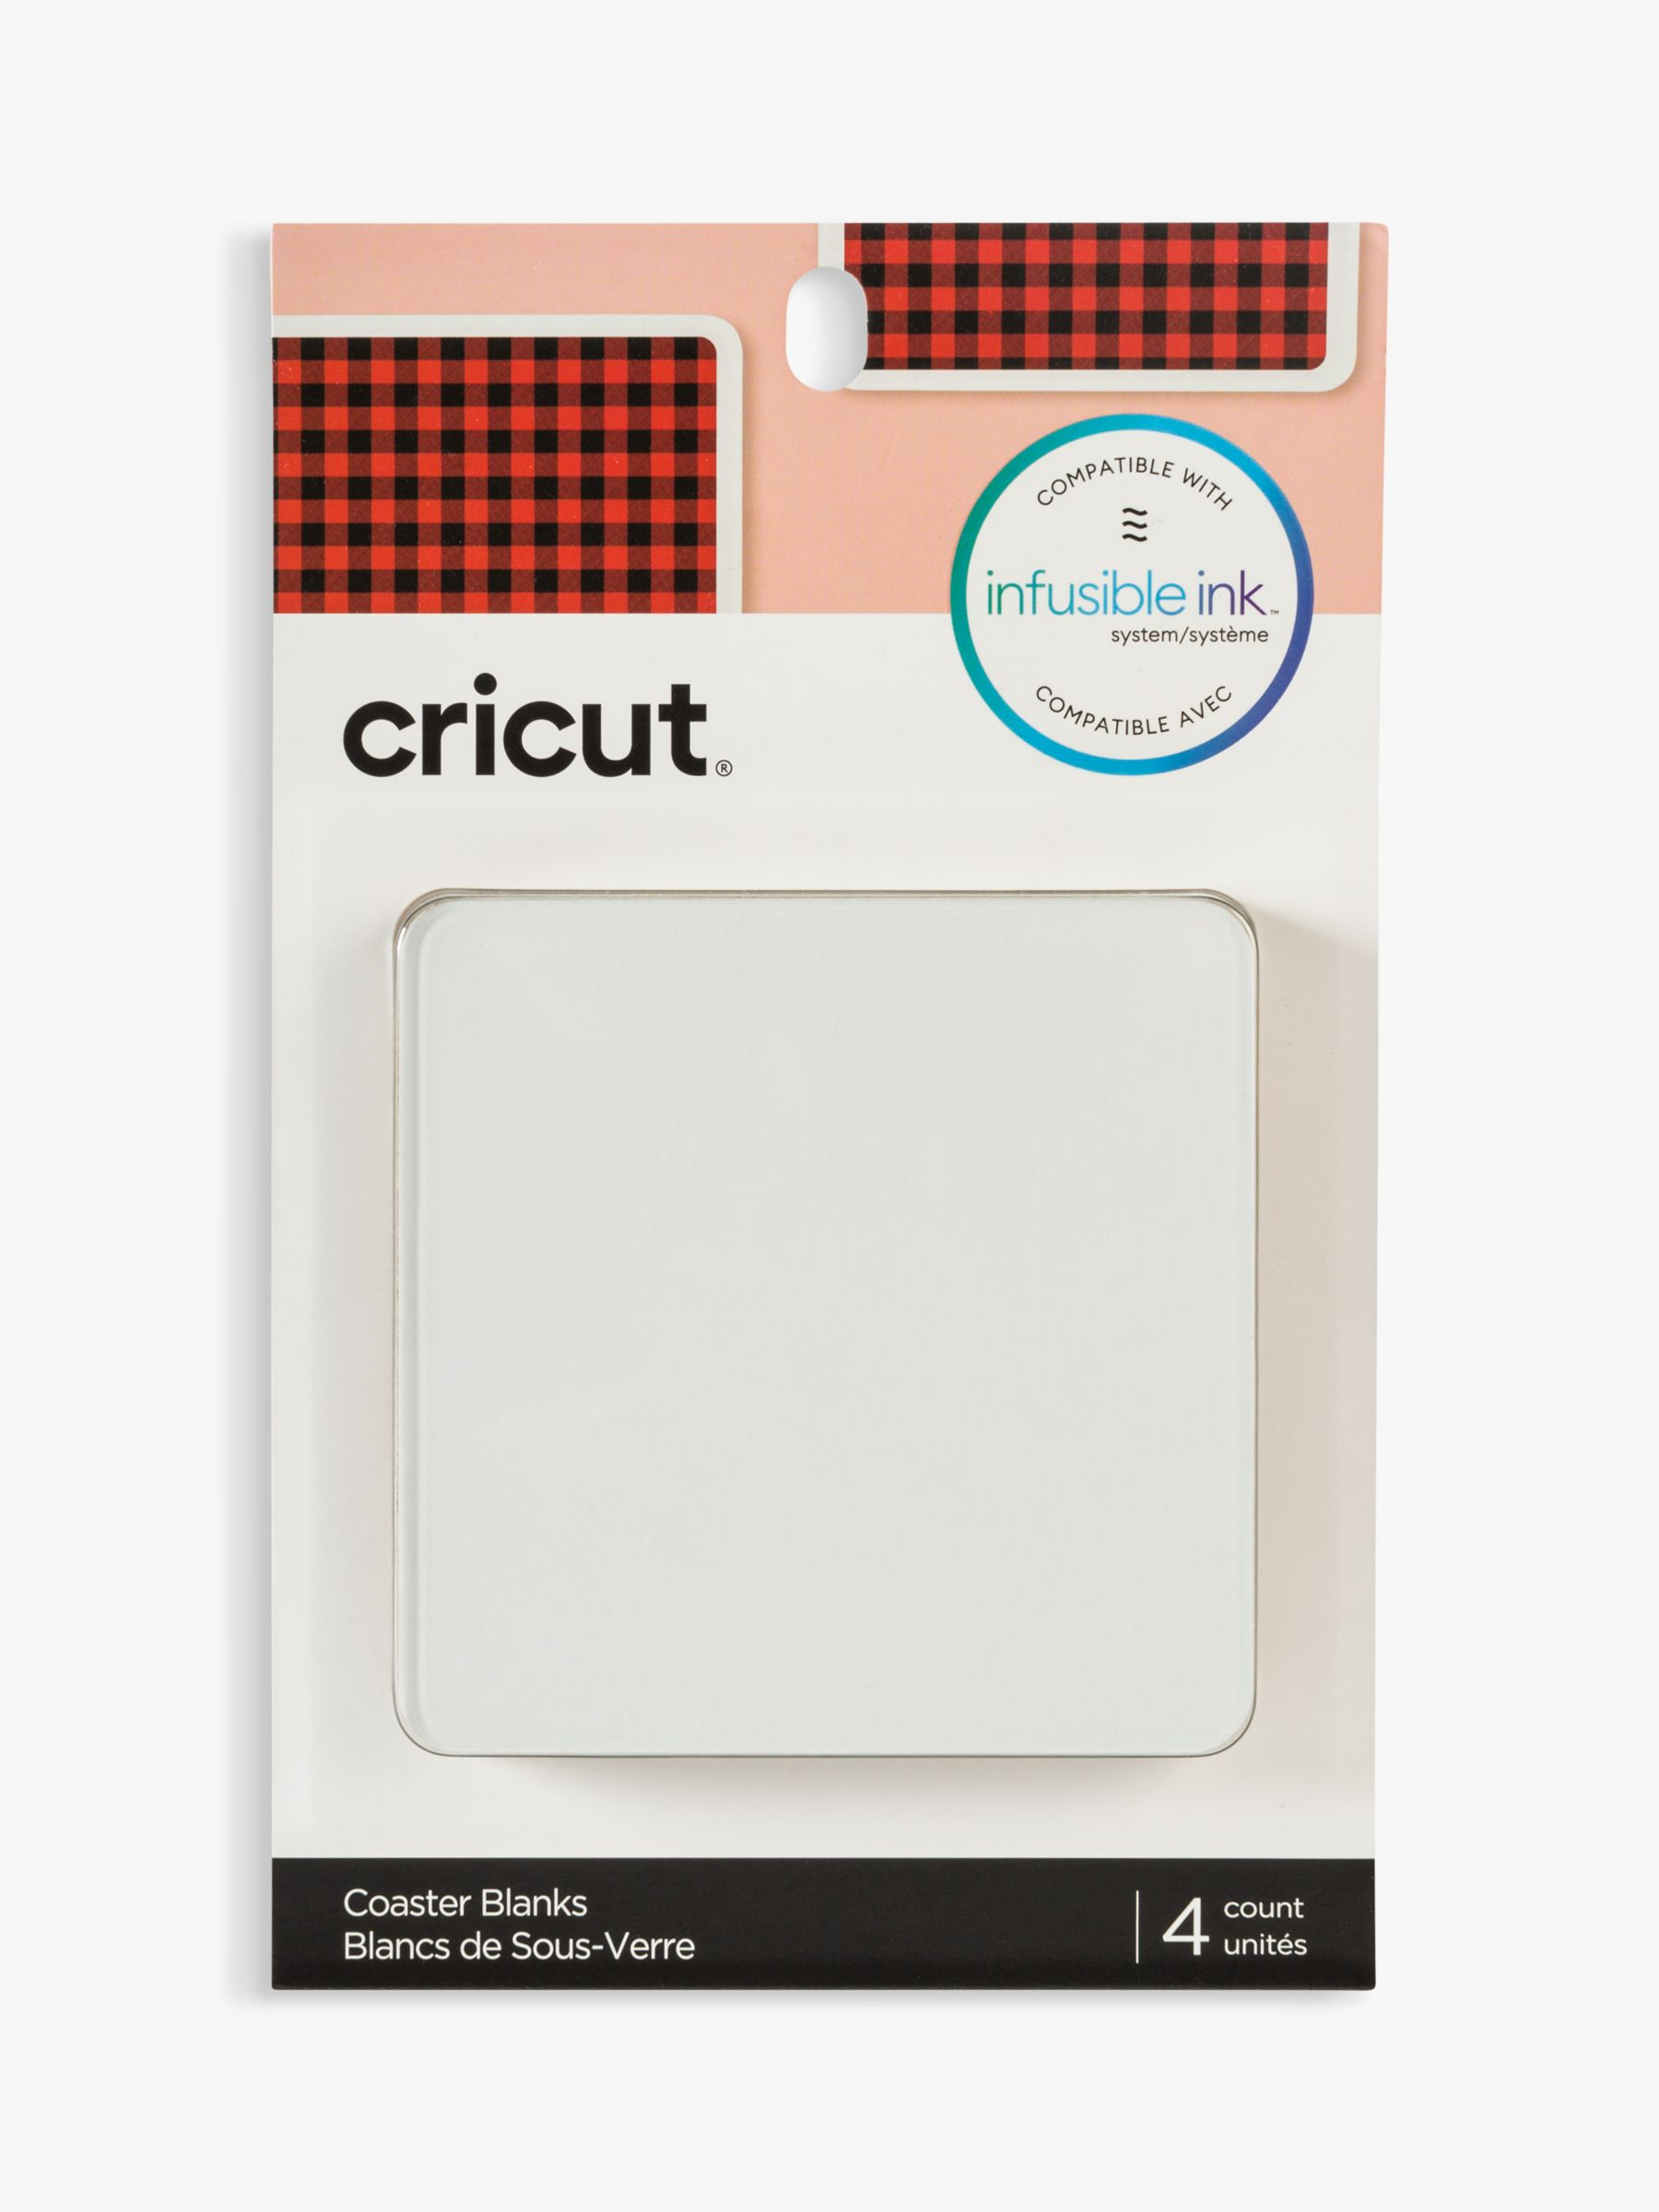 Cricut Infusible Ink Blank Coaster Square, Pack of 4